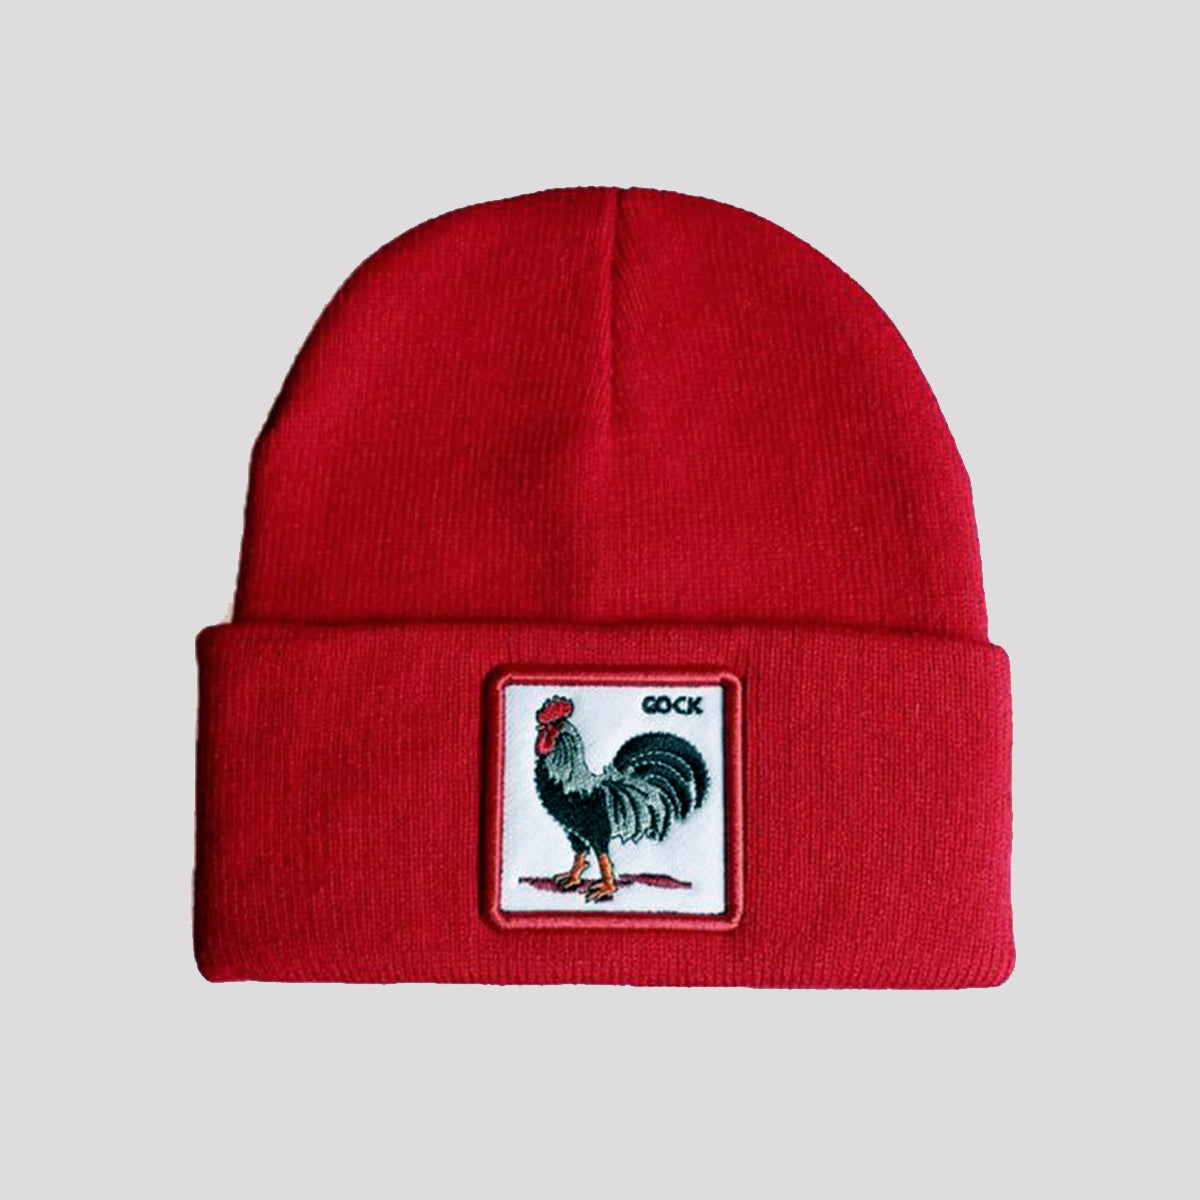 Bonnet Apollos®<br> Coq Red